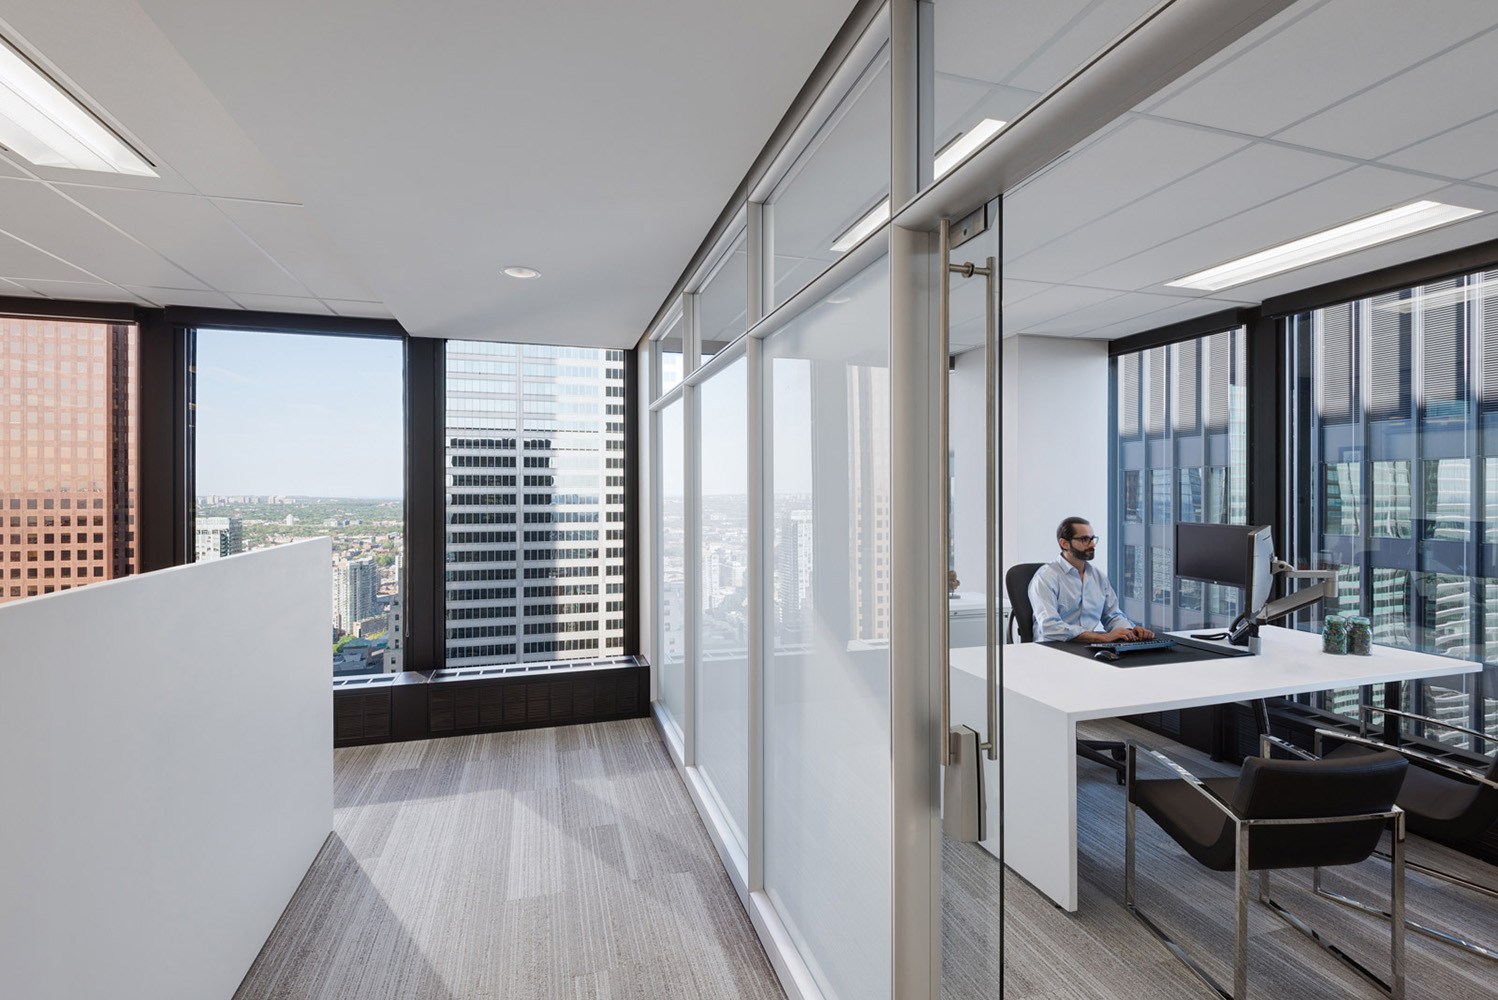 Toronto corner office in historic TD towers by Mies van der Rohe